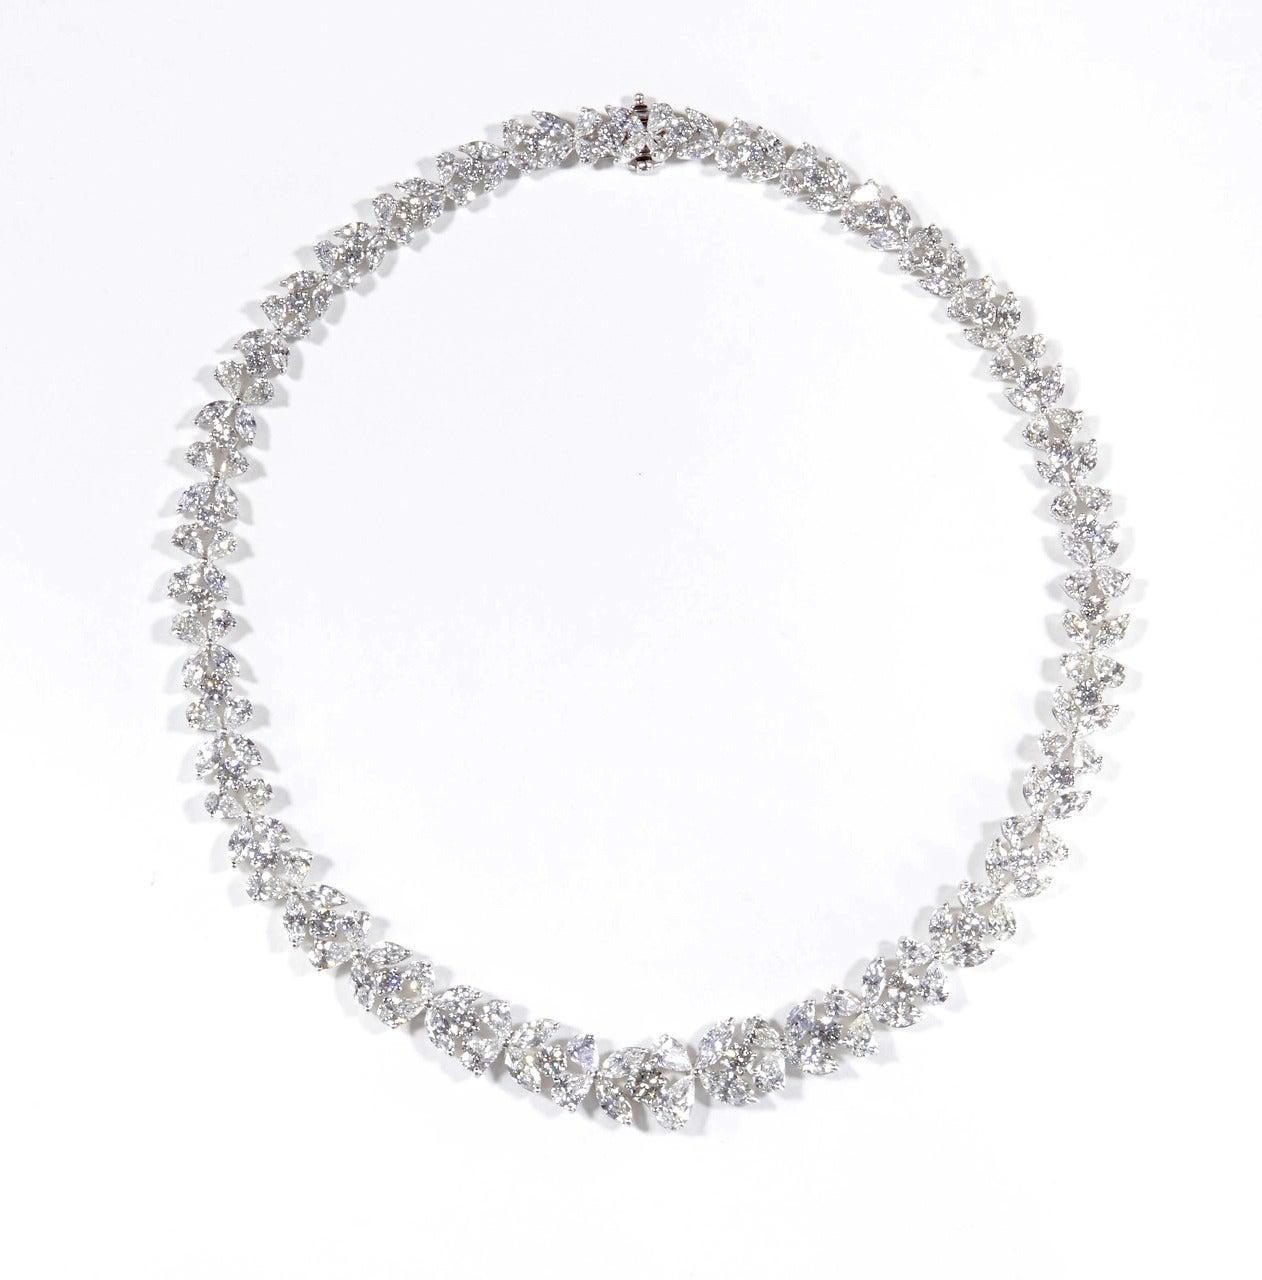 The most elegant diamond necklace!  51.14 carats of F-G color VS clarity diamond set in platinum.  This exquisite piece is handmade in New York.